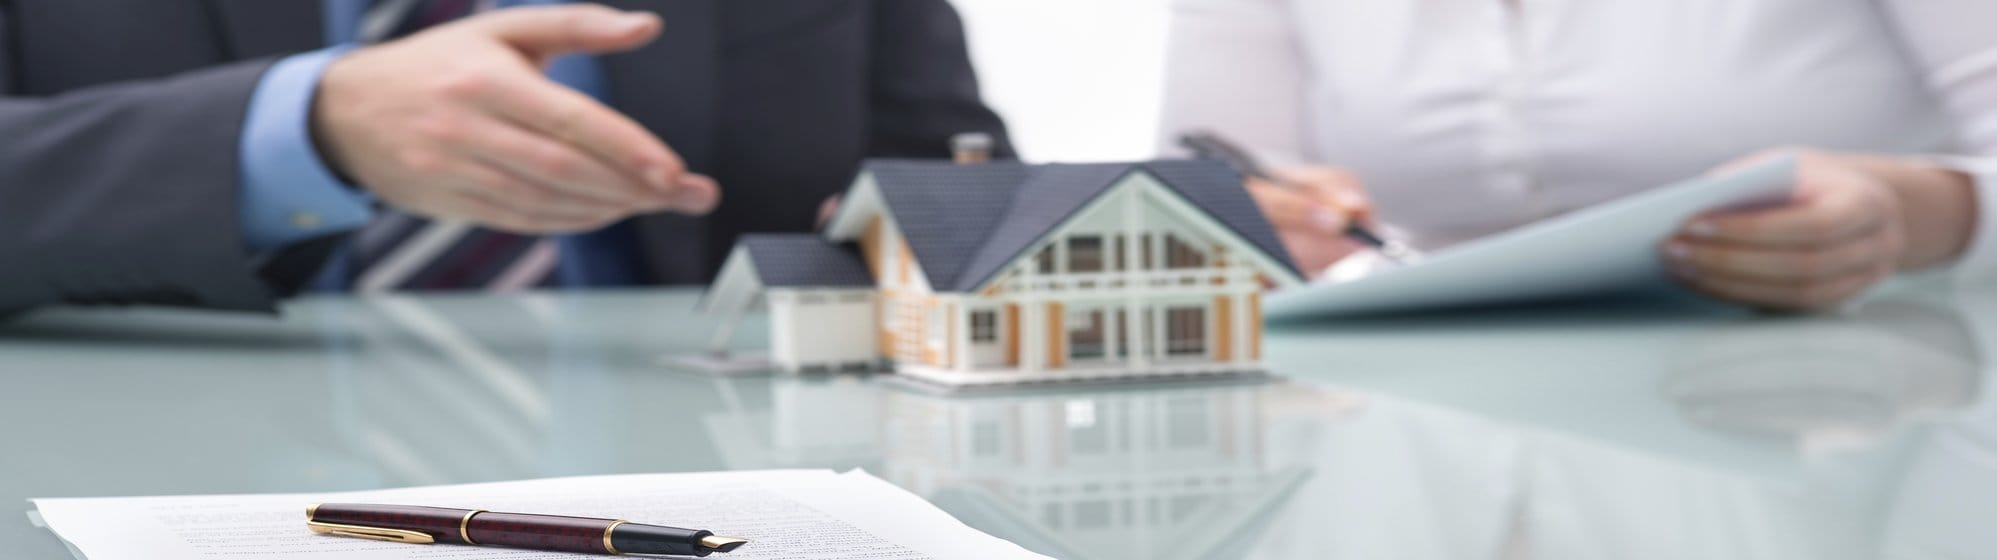 HOME MORTGAGE REFINANCING is easy with our professionals' help.